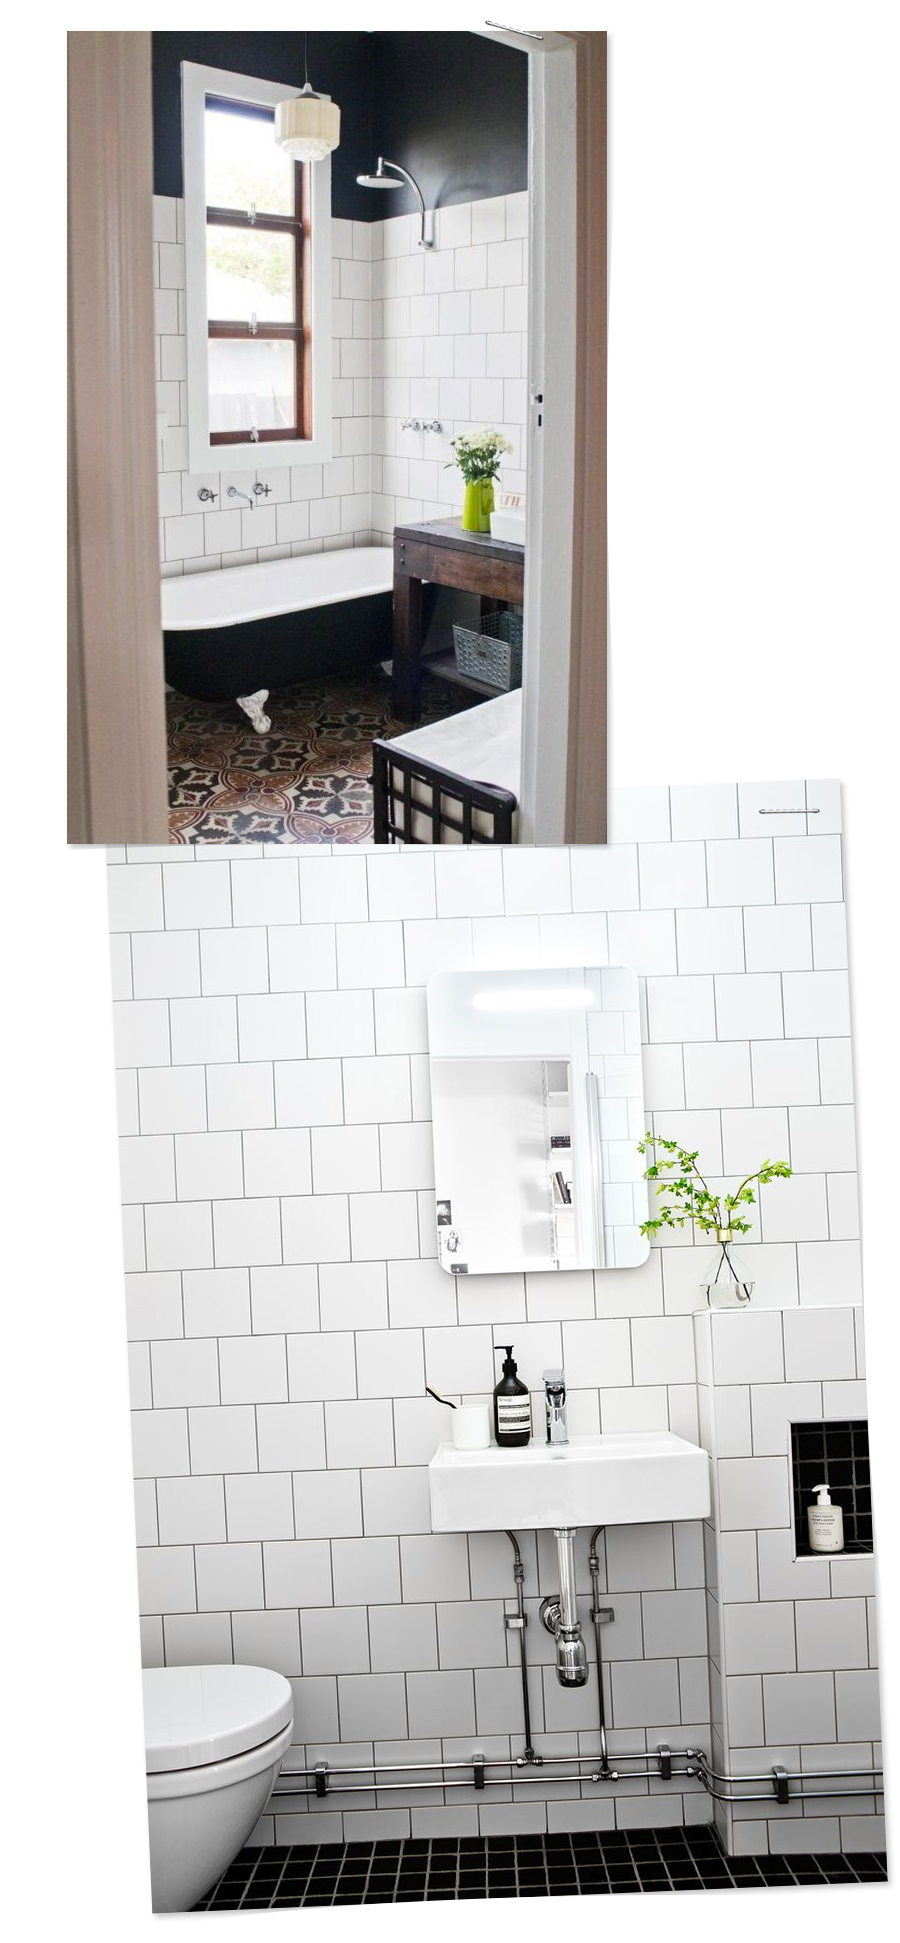 Inspirational Bathrooms : White square tile in an offset pattern with black grout